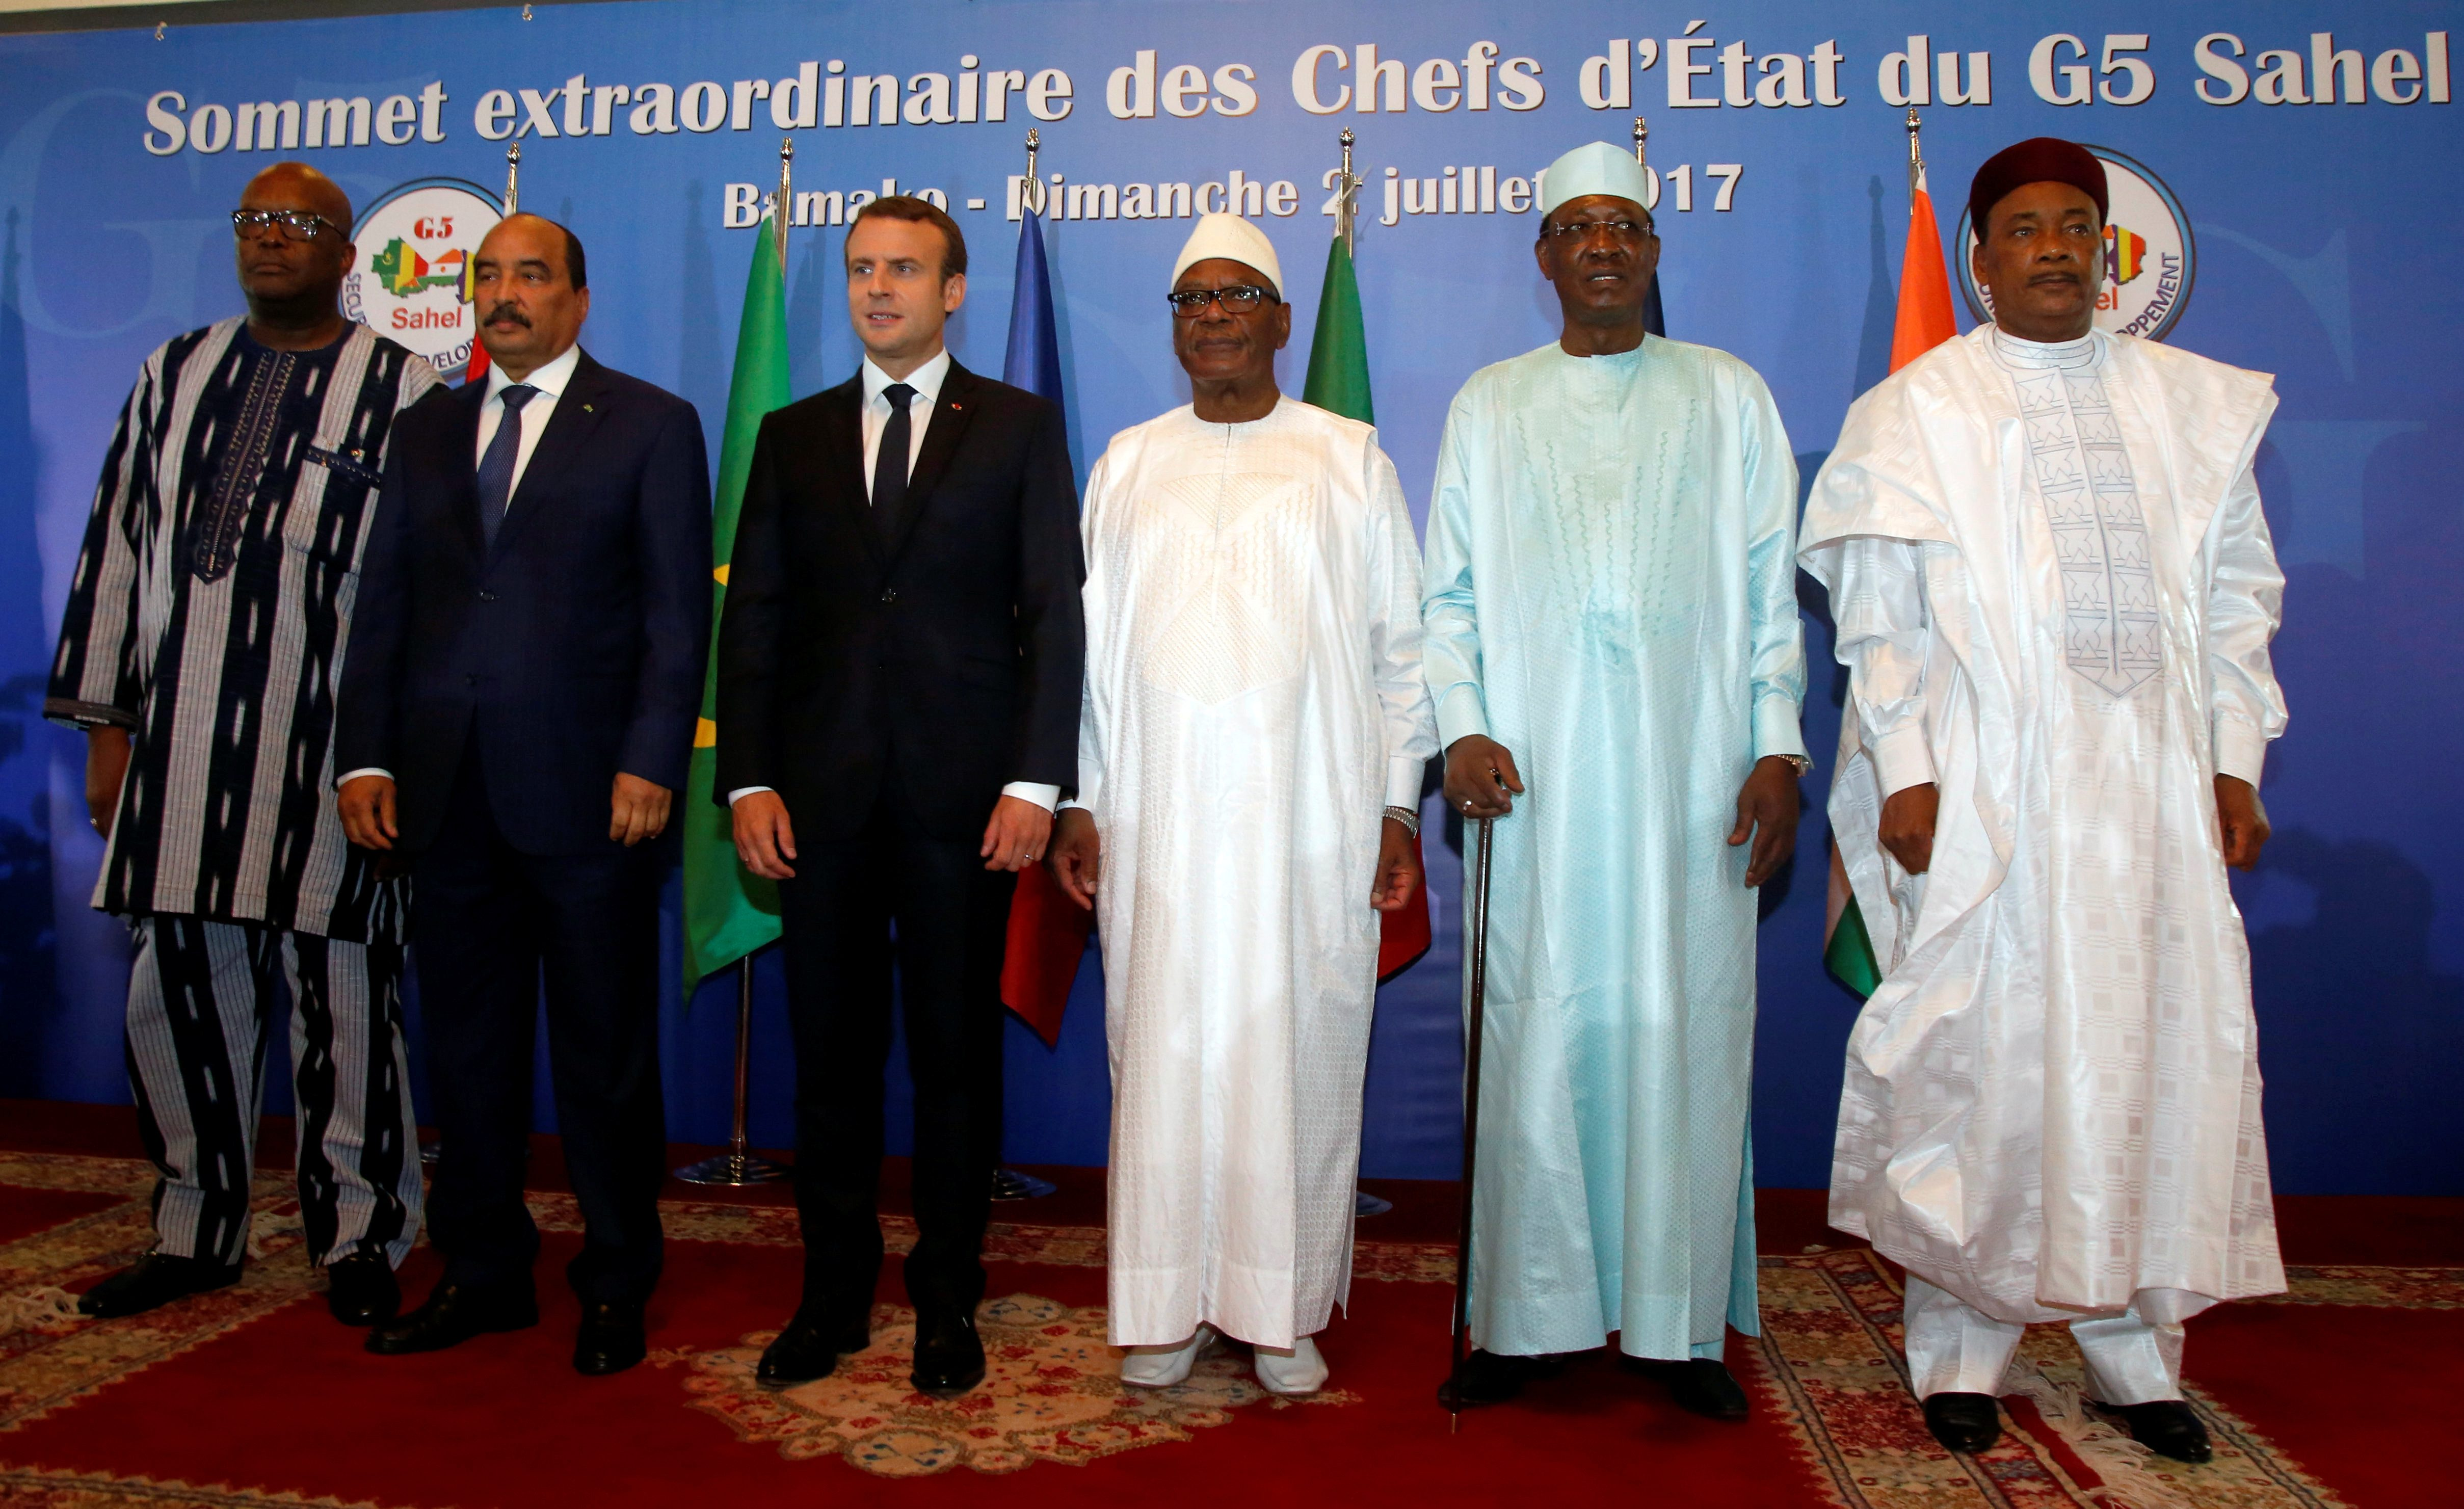 Presidents pose during G5 Sahel Summit at the Koulouba Presidential Palace in Bamako